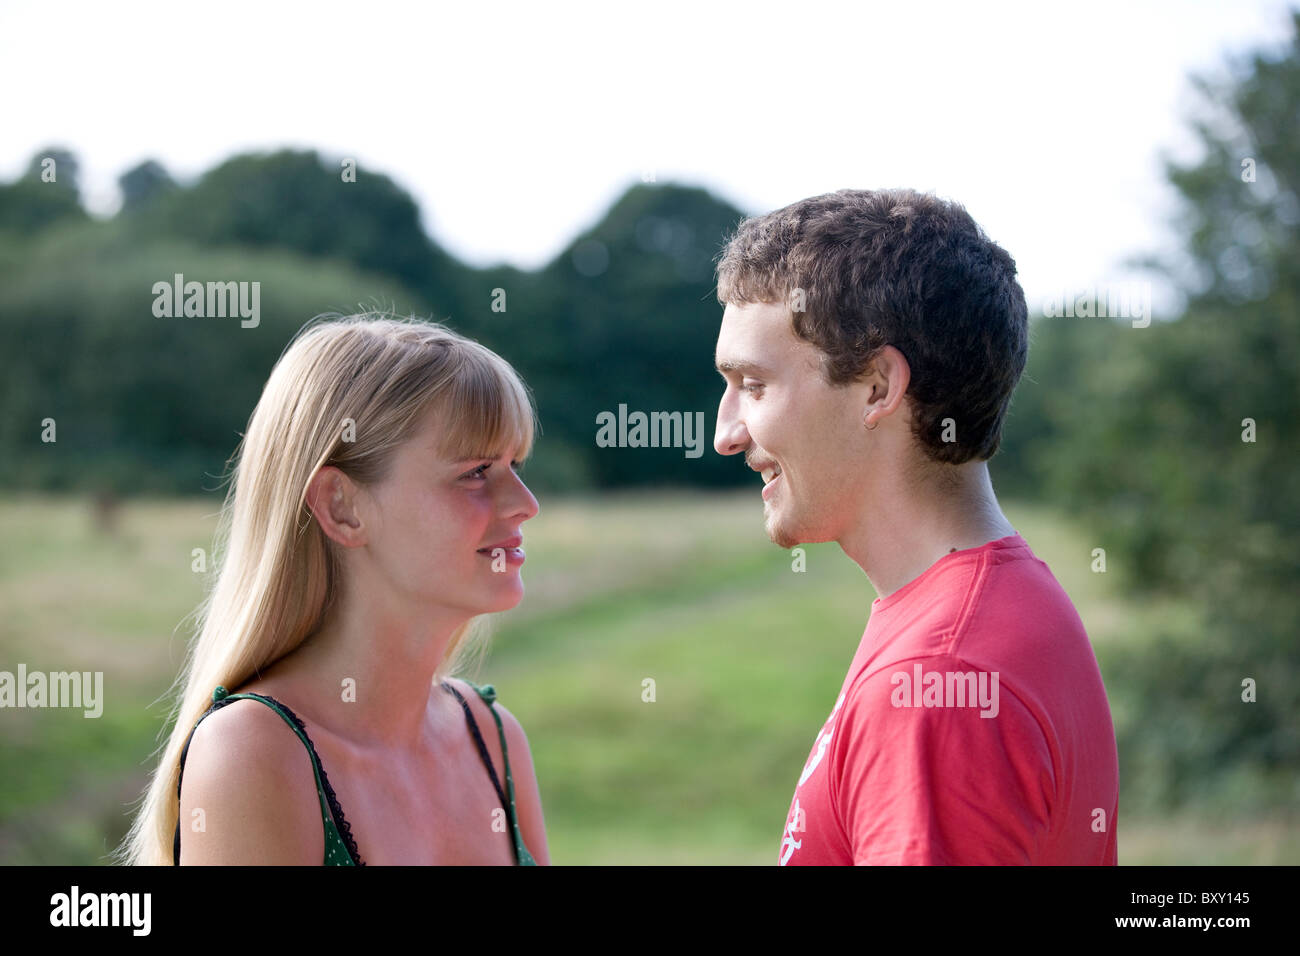 A young couple standing outdoors, smiling at each other - Stock Image